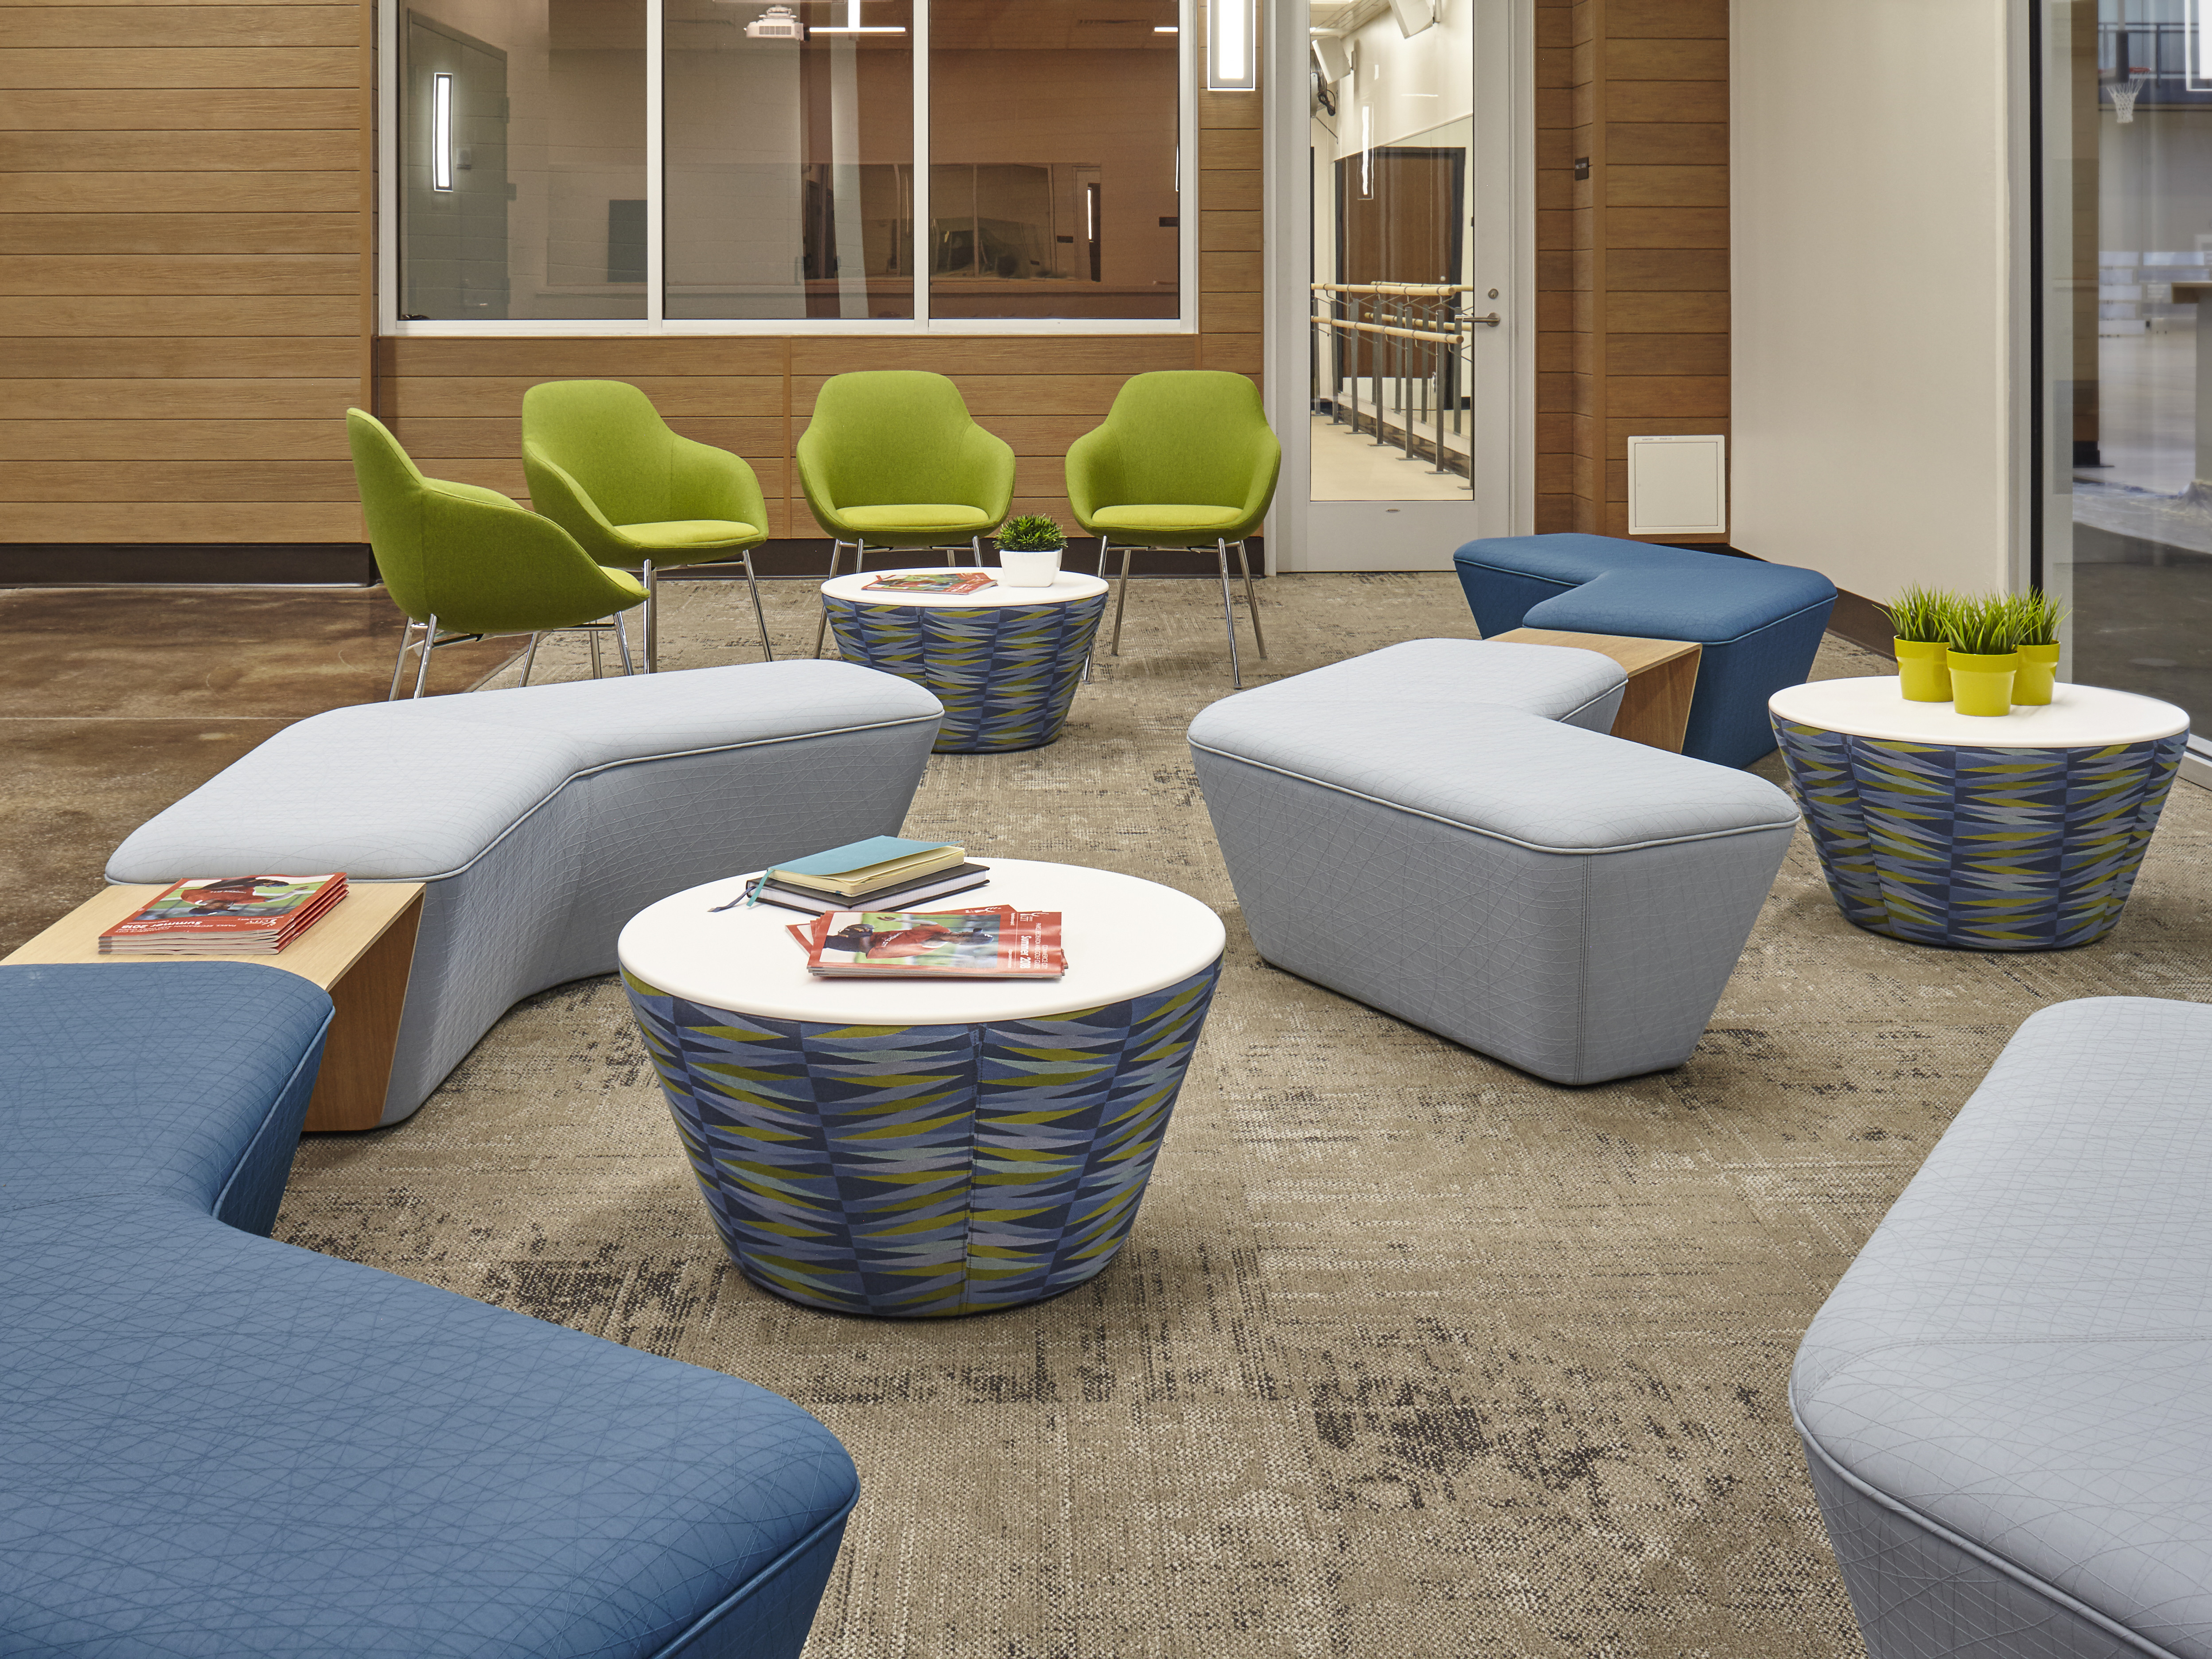 Office Furniture Denver: Recreation Center Design